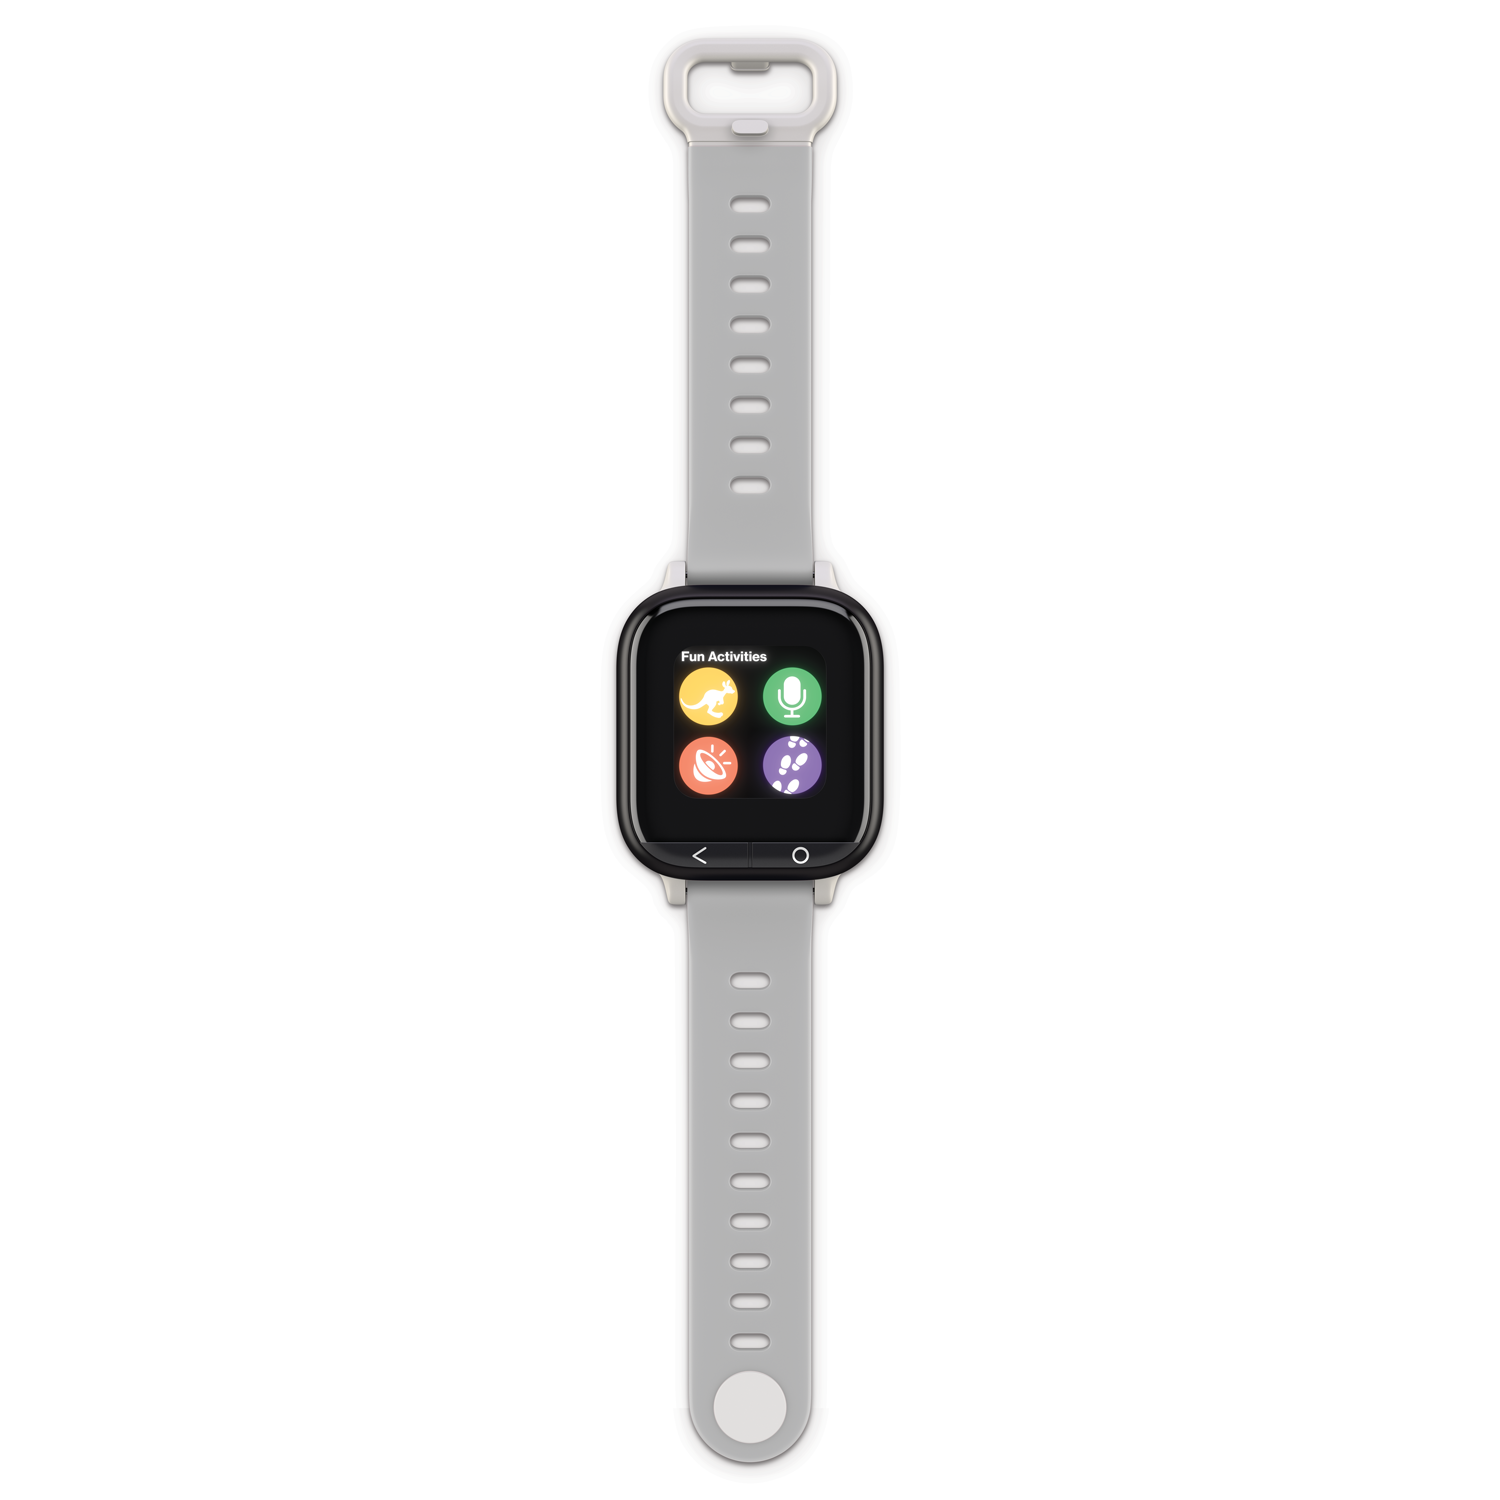 VZ_GizmoWatch_Front_GRAY_v50.png